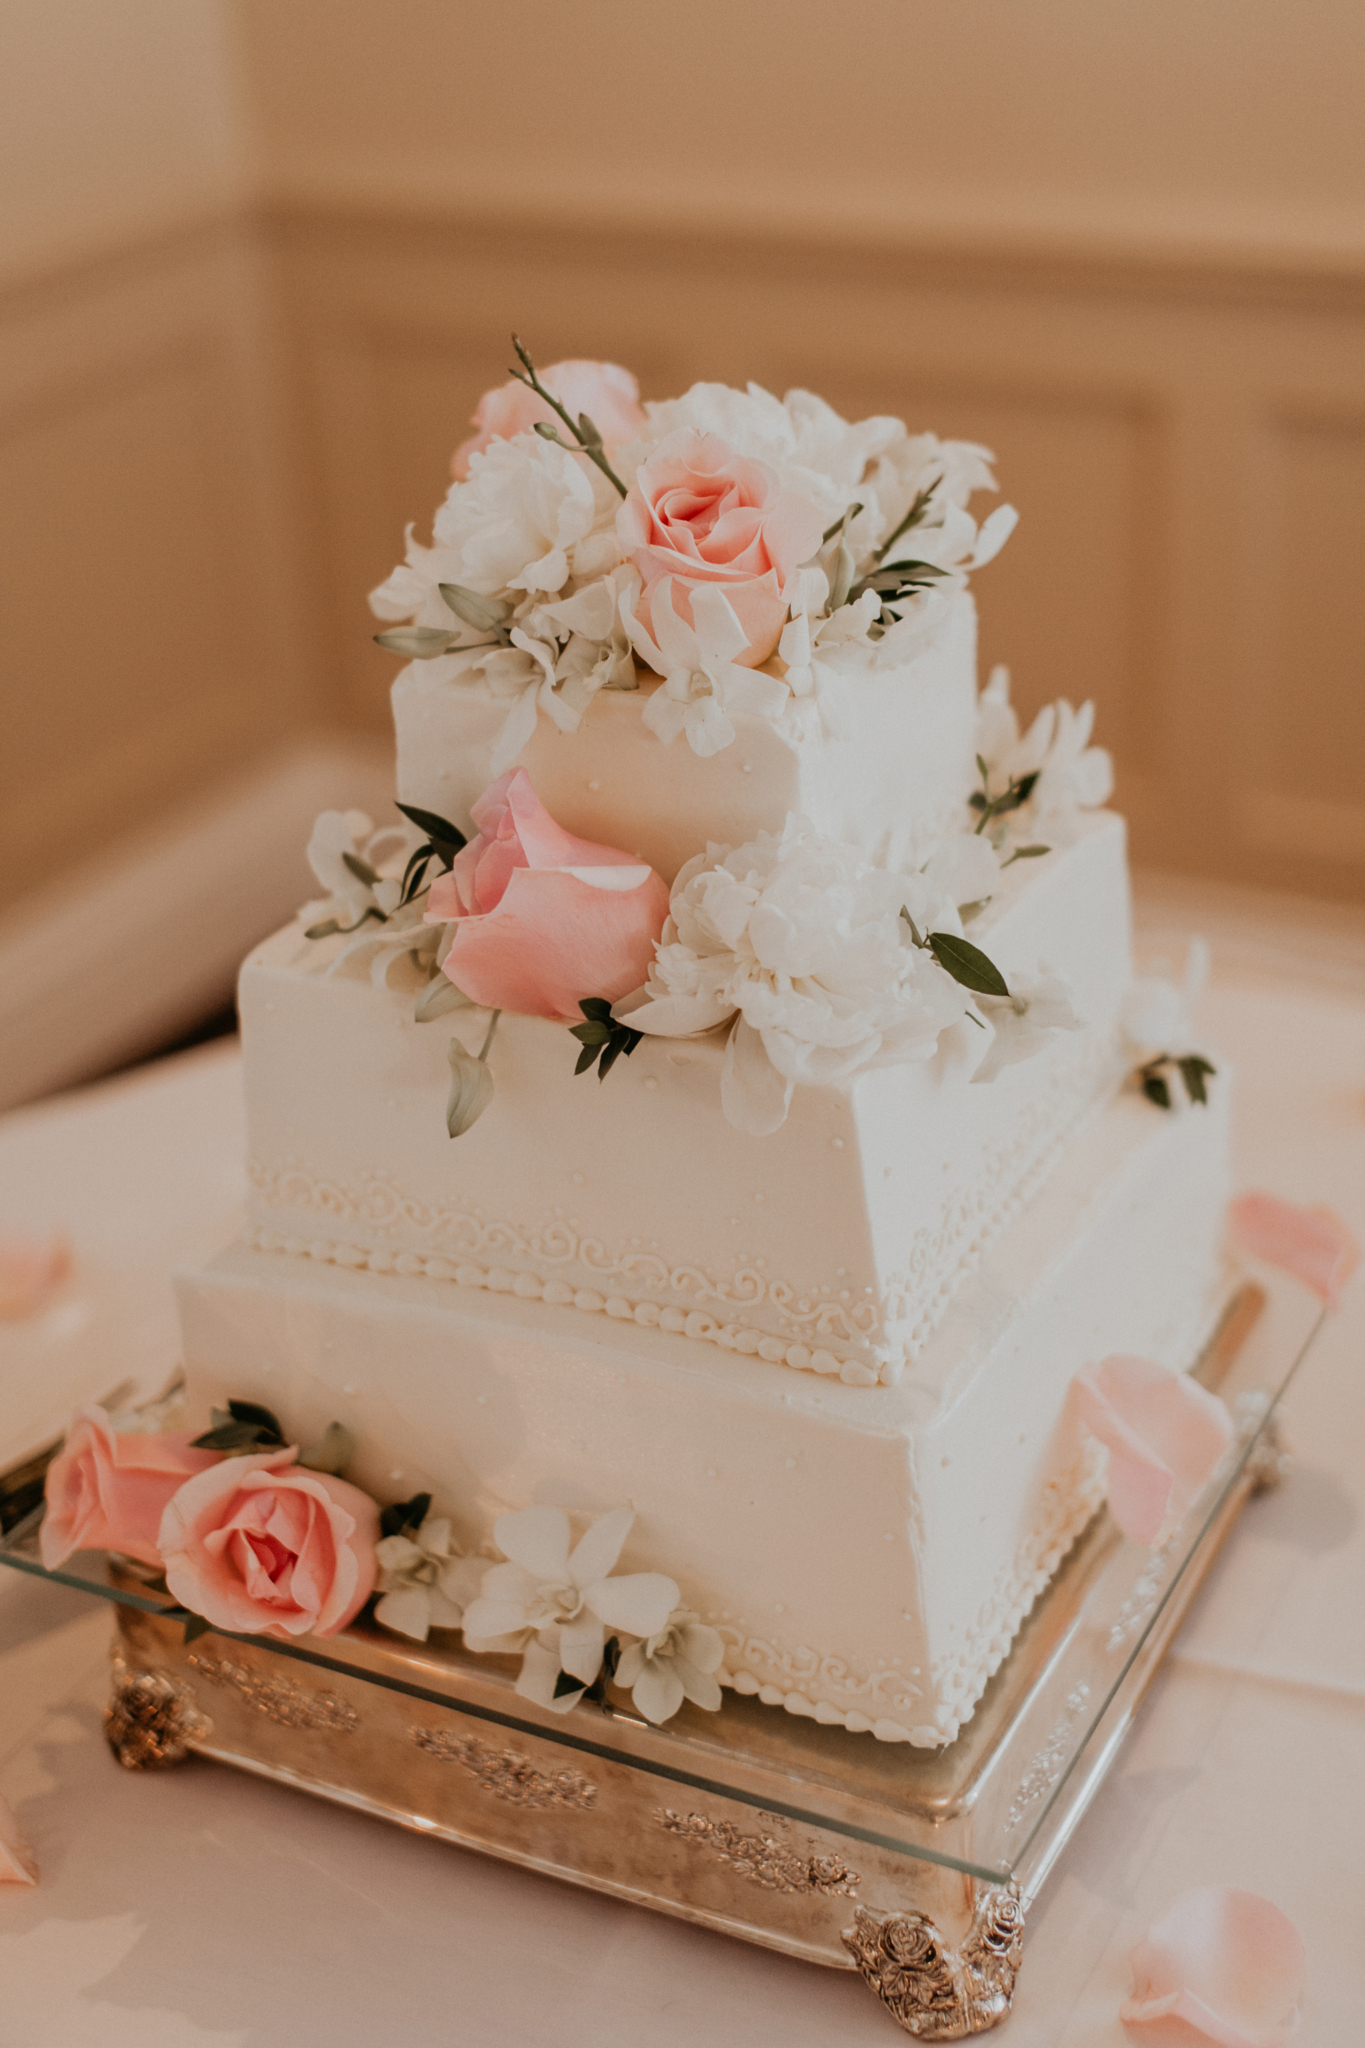 Wedding cake on table with pink roses